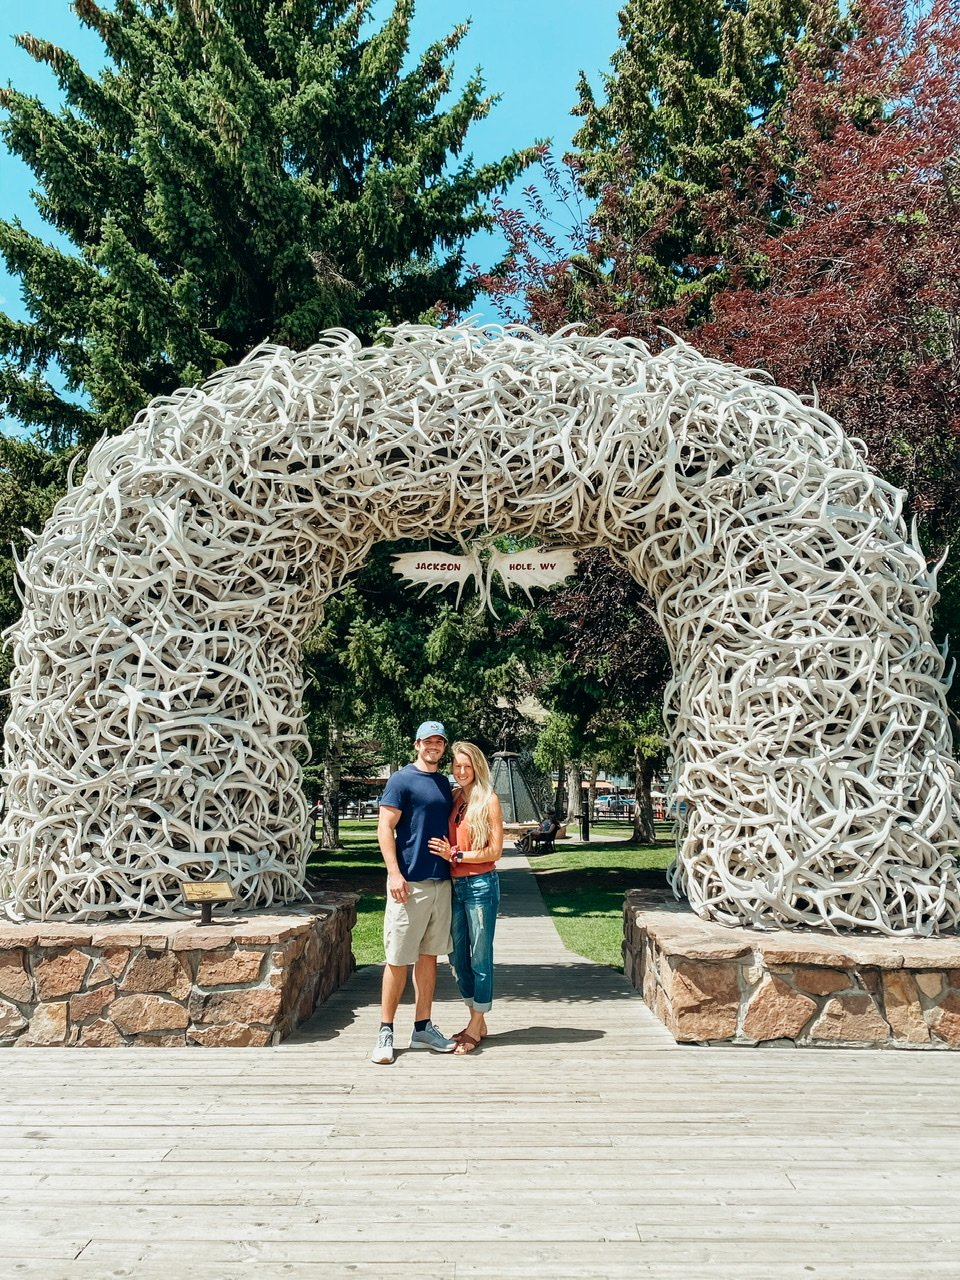 Downtown Jackson Hole Wyoming at the elk arch